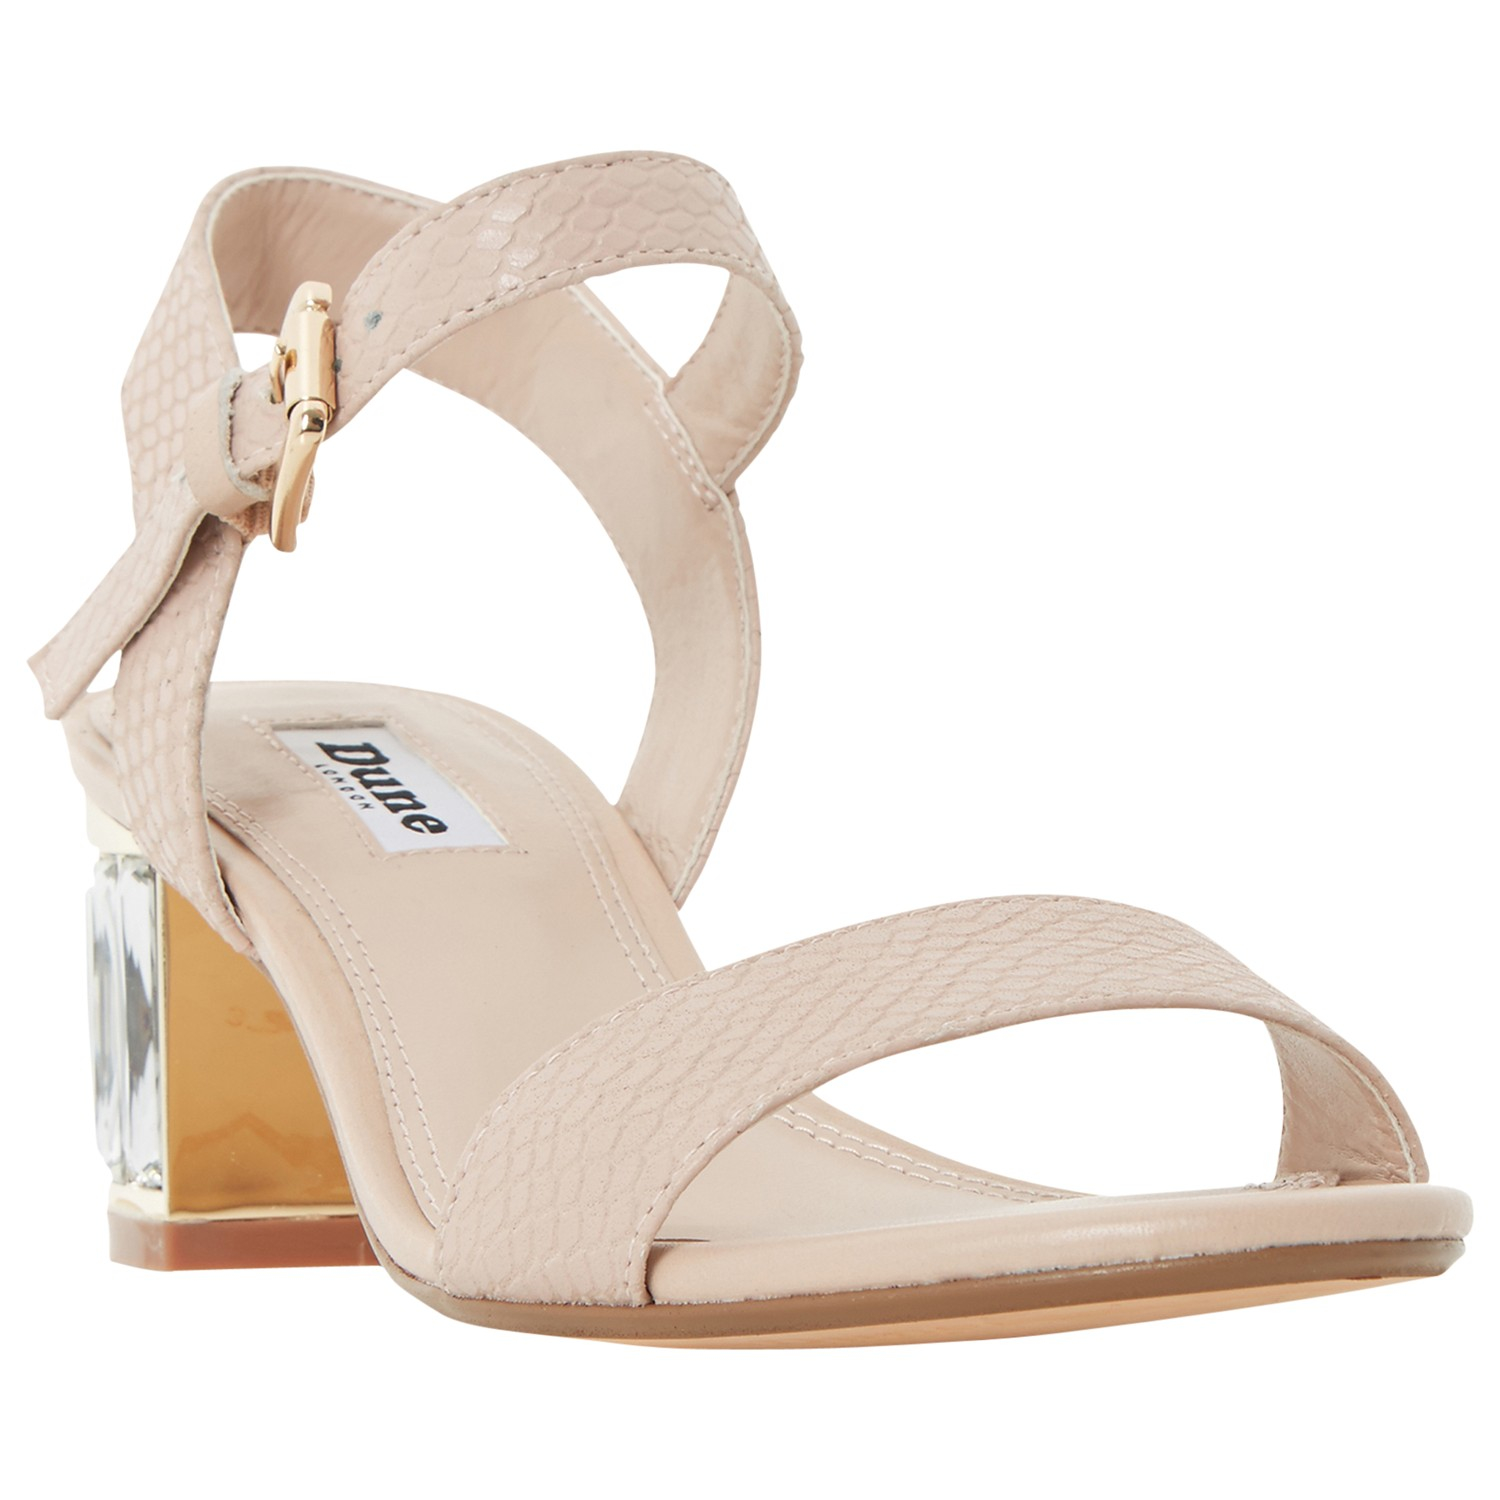 00ed65237 Dune Marcia Jewelled Block Heel Sandals in Natural - Lyst